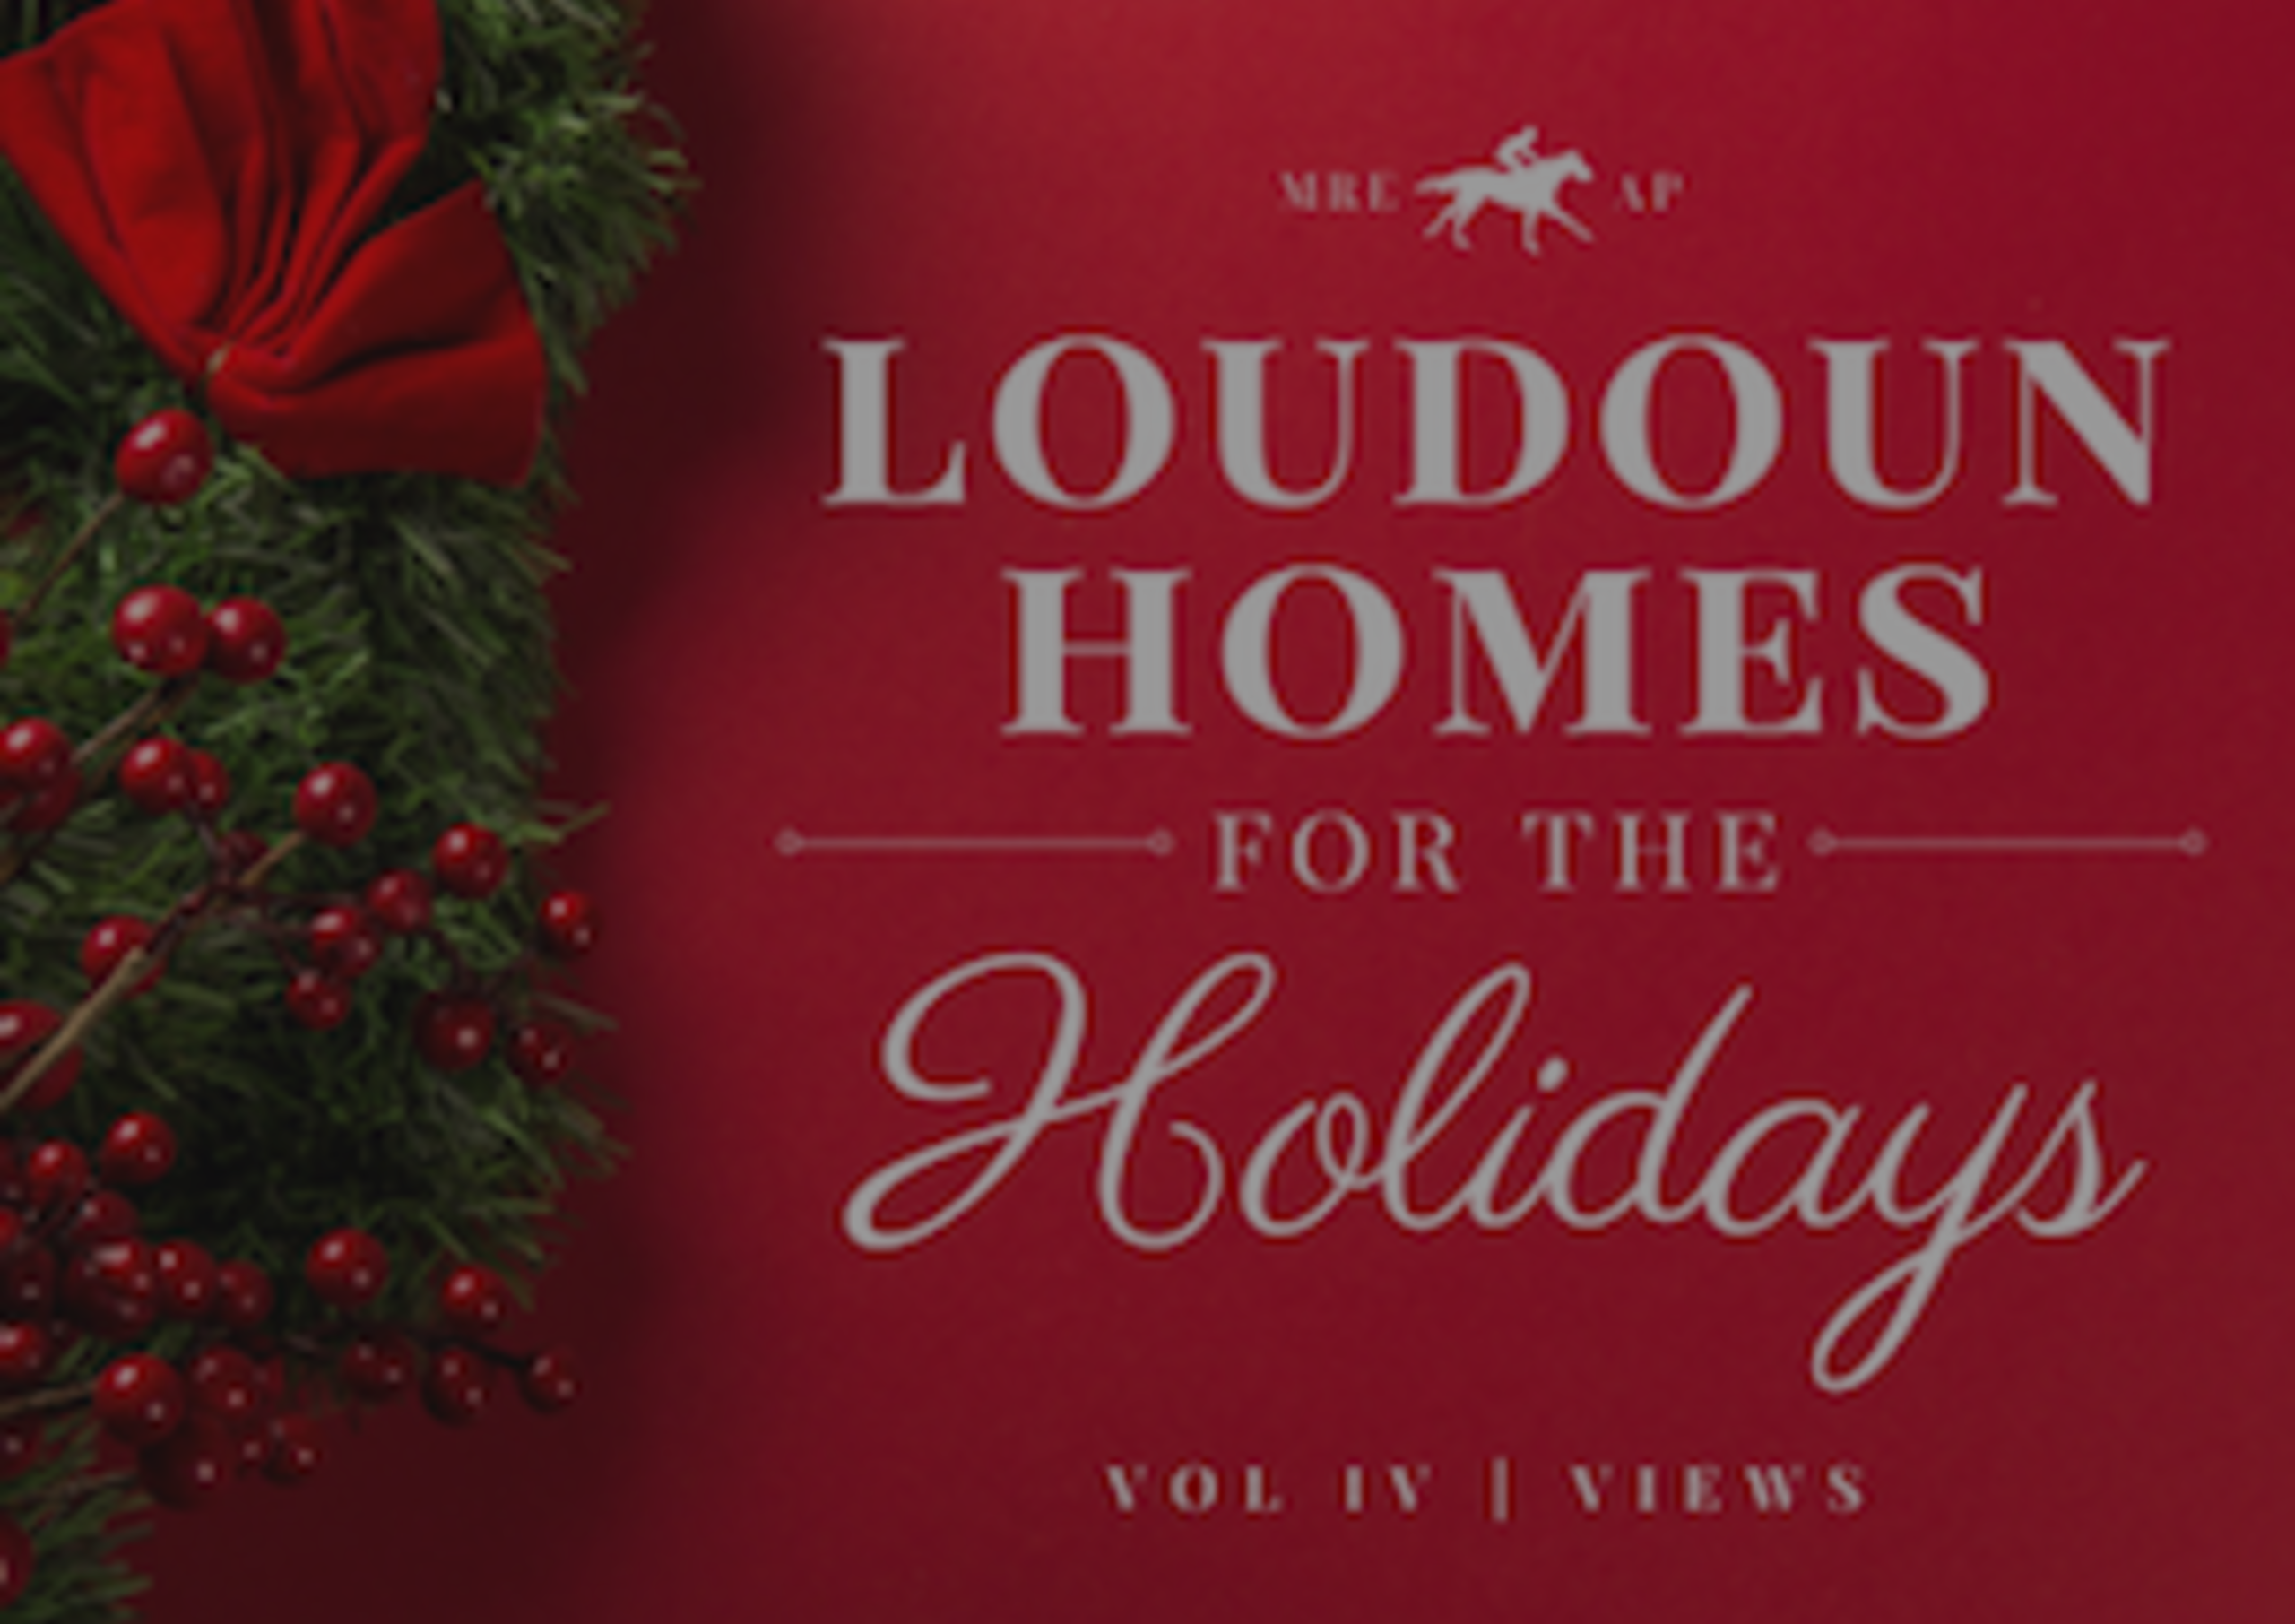 Loudoun Homes for the Holidays│Views